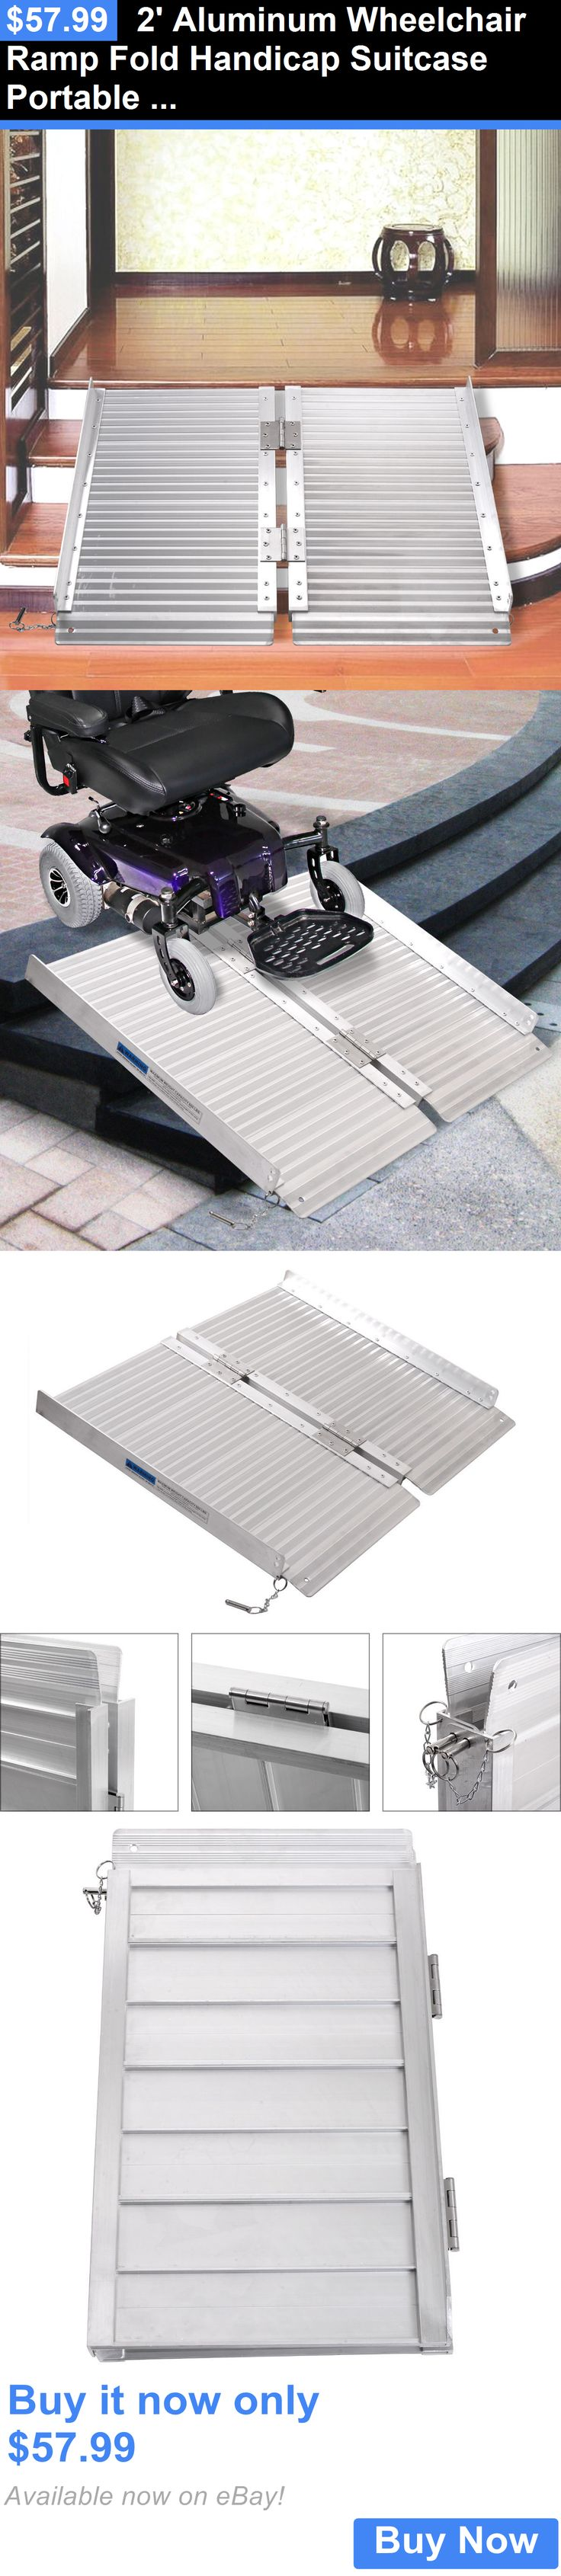 Access Ramps: 2 Aluminum Wheelchair Ramp Fold Handicap Suitcase Portable Mobility Threshold BUY IT NOW ONLY: $57.99